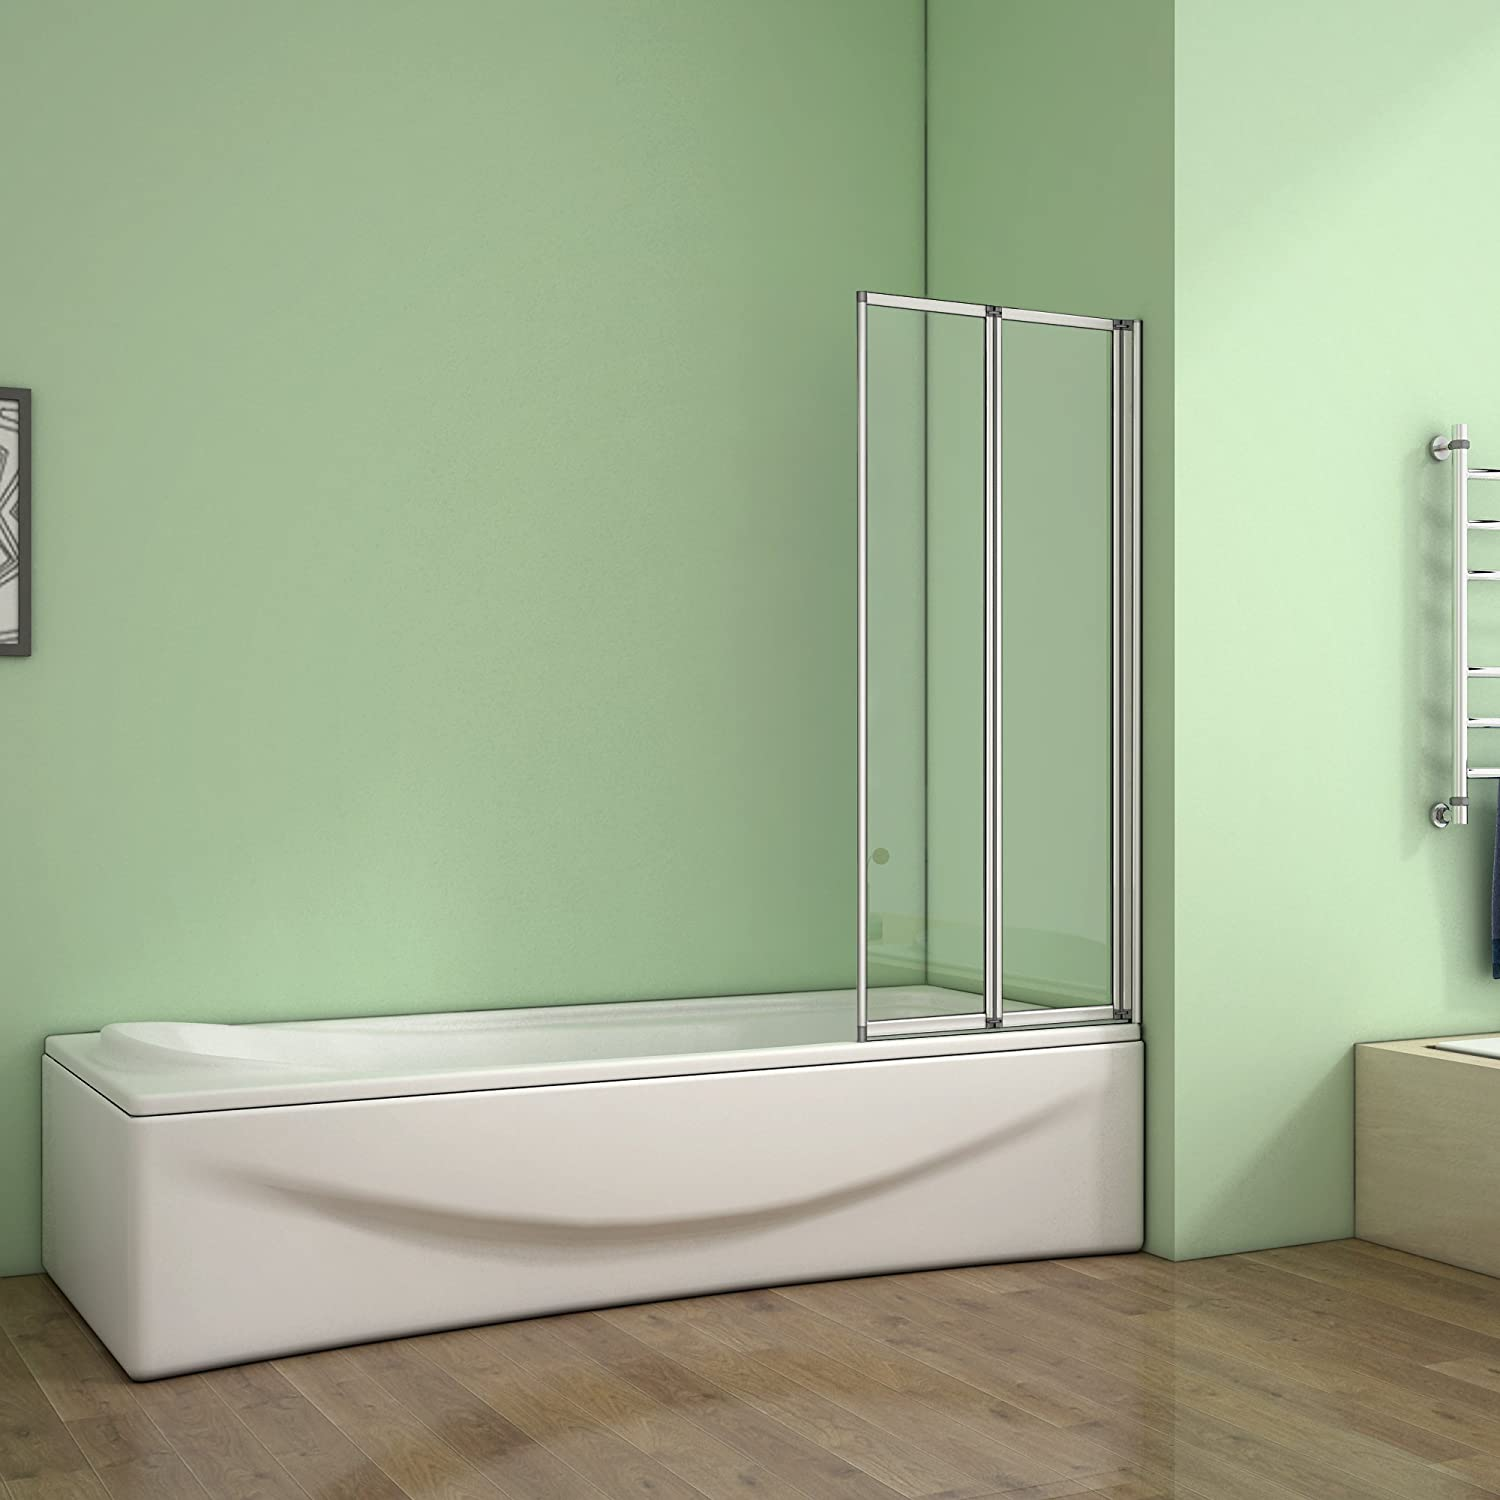 800x1400mm 2 Fold Folding Shower Screen Bath Screen Glass Panel